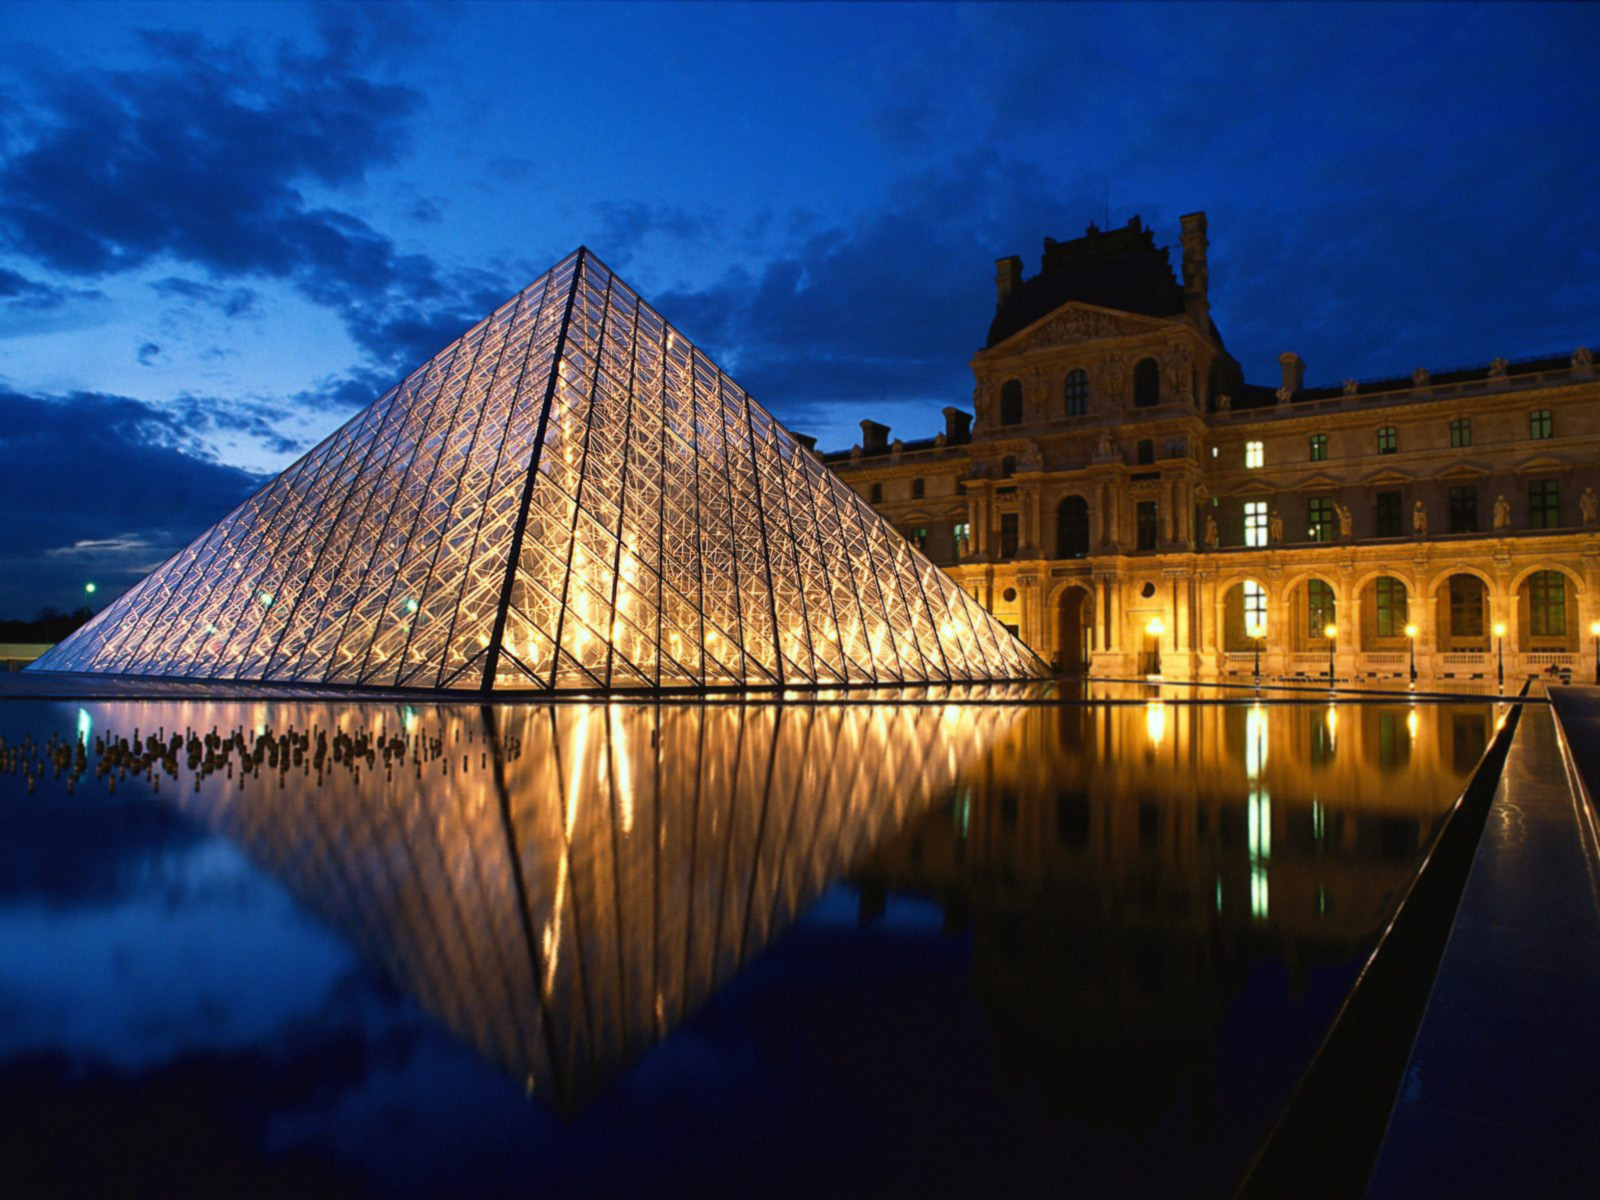 Pyramid-at-Louvre-Museum-Paris-France_1600x1200